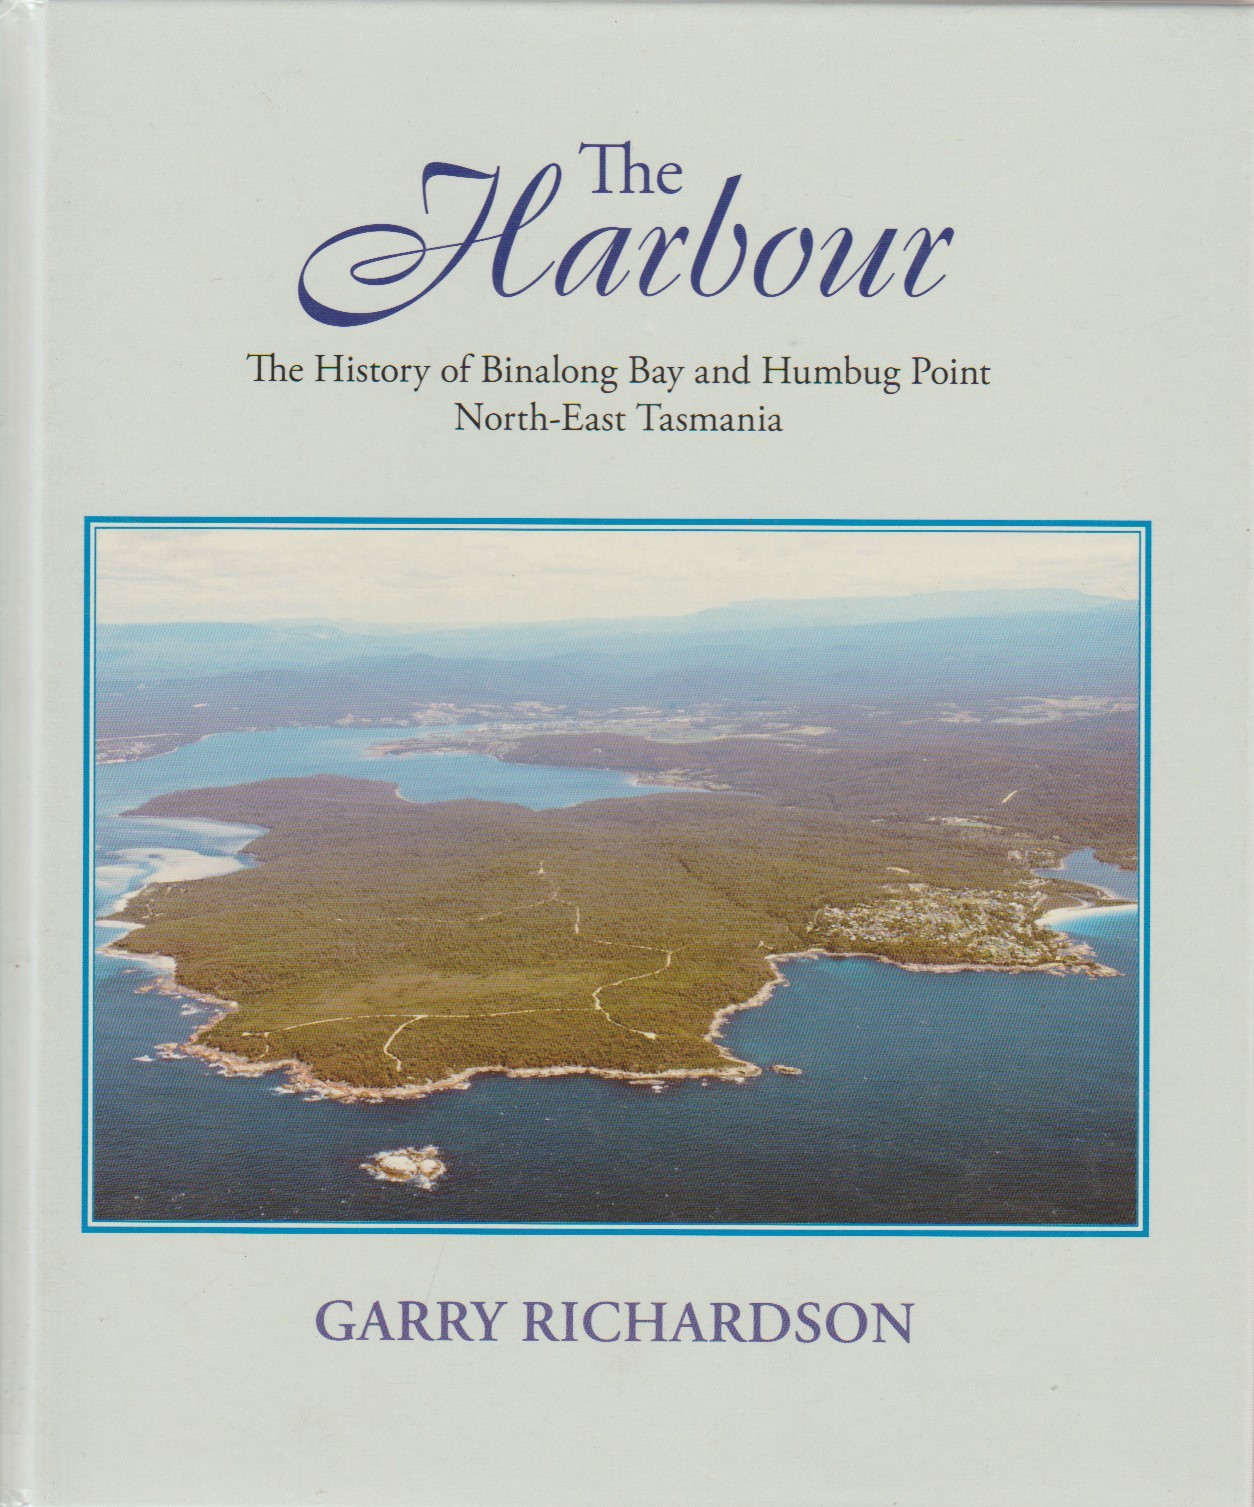 The Harbour - the history of Binalong Bay and Humbug Point, North-East Tasmania